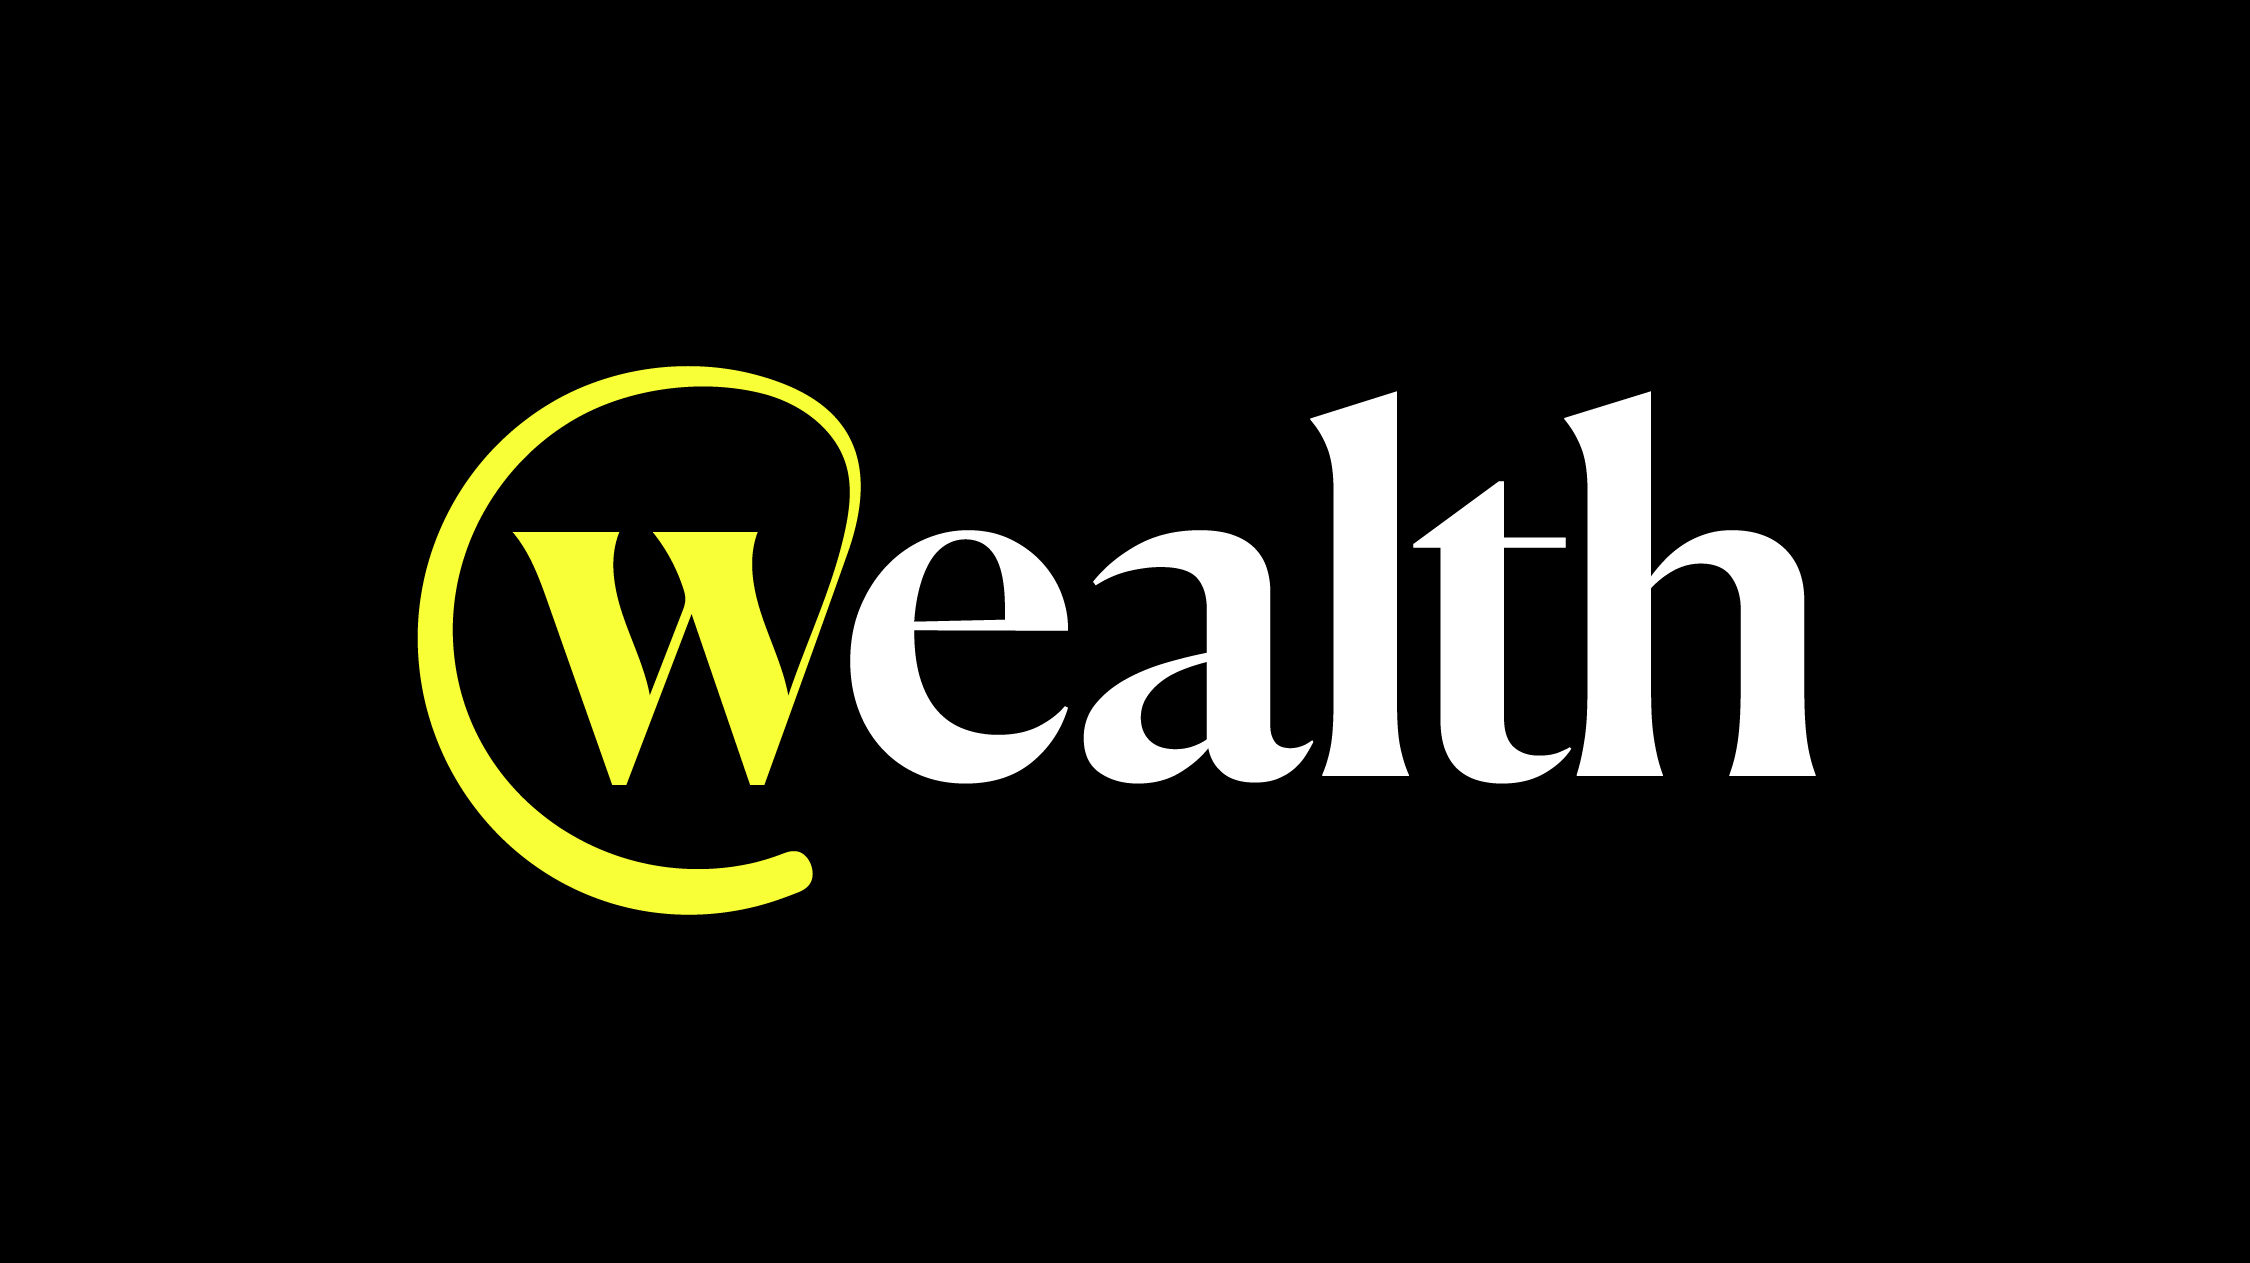 cropped Wealth 03 3